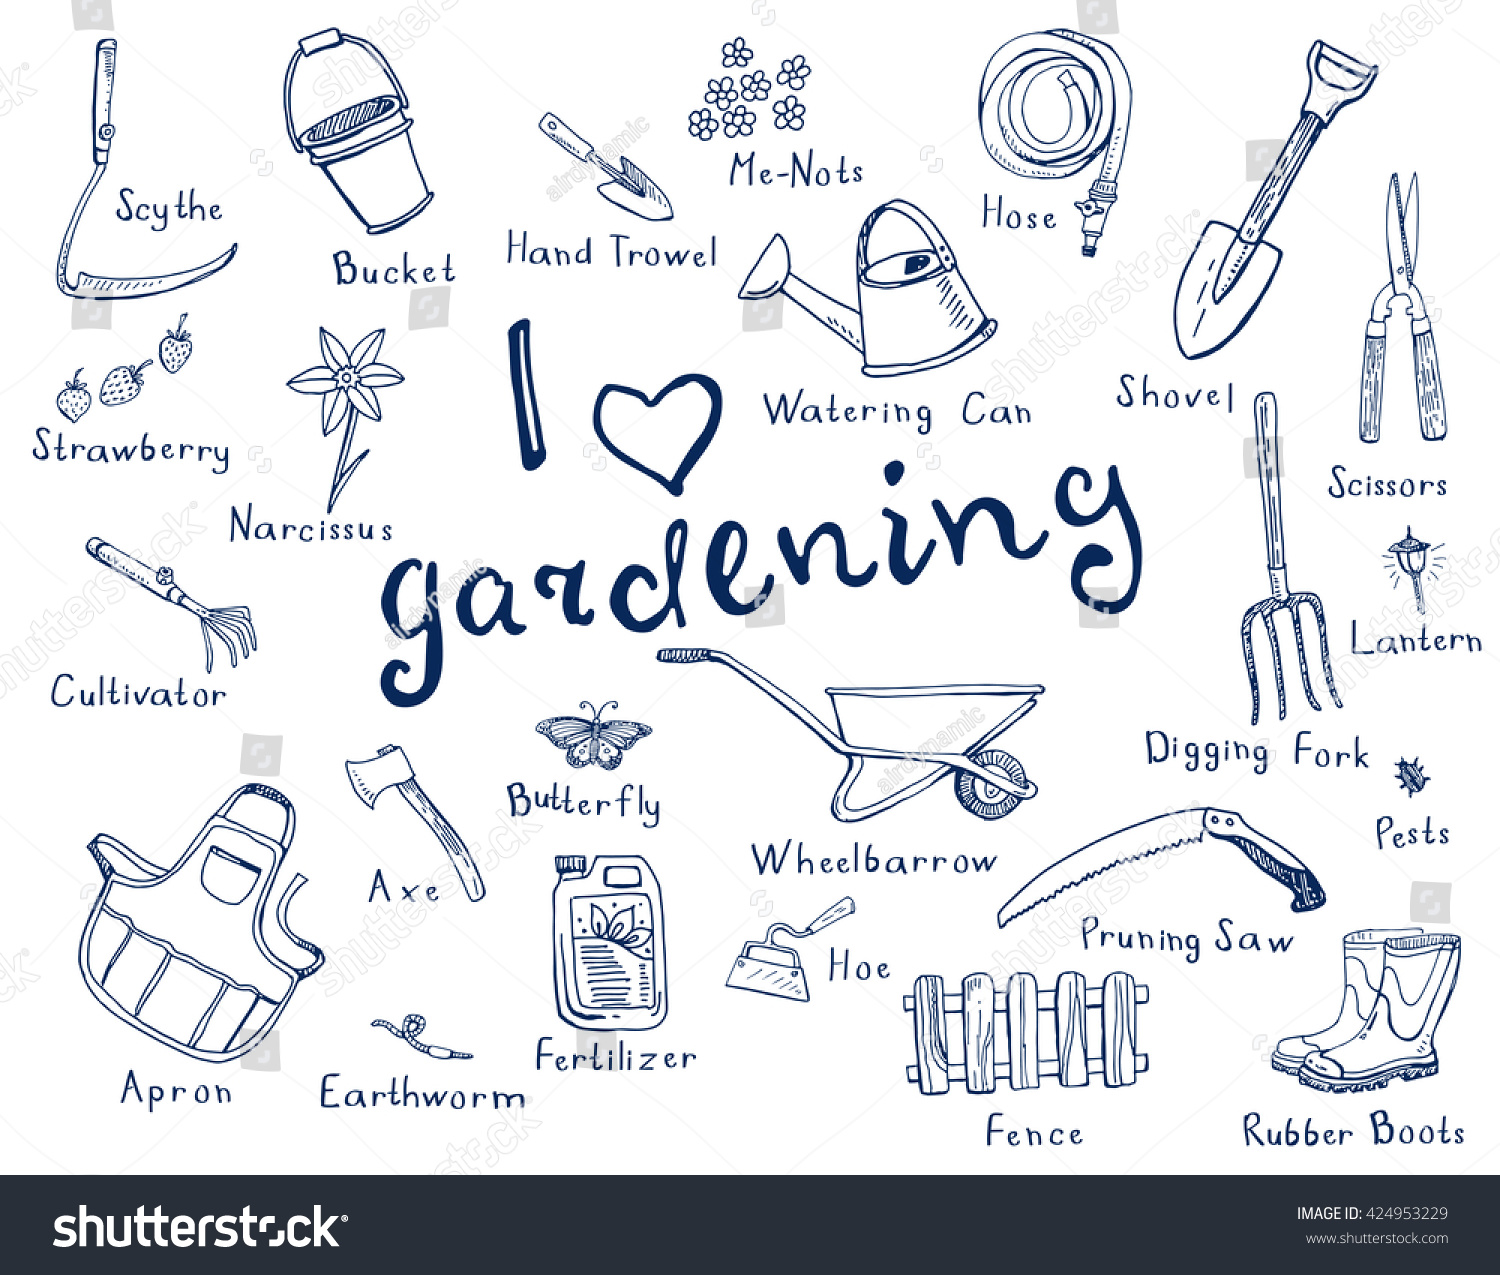 Gardening Tools Names And Images